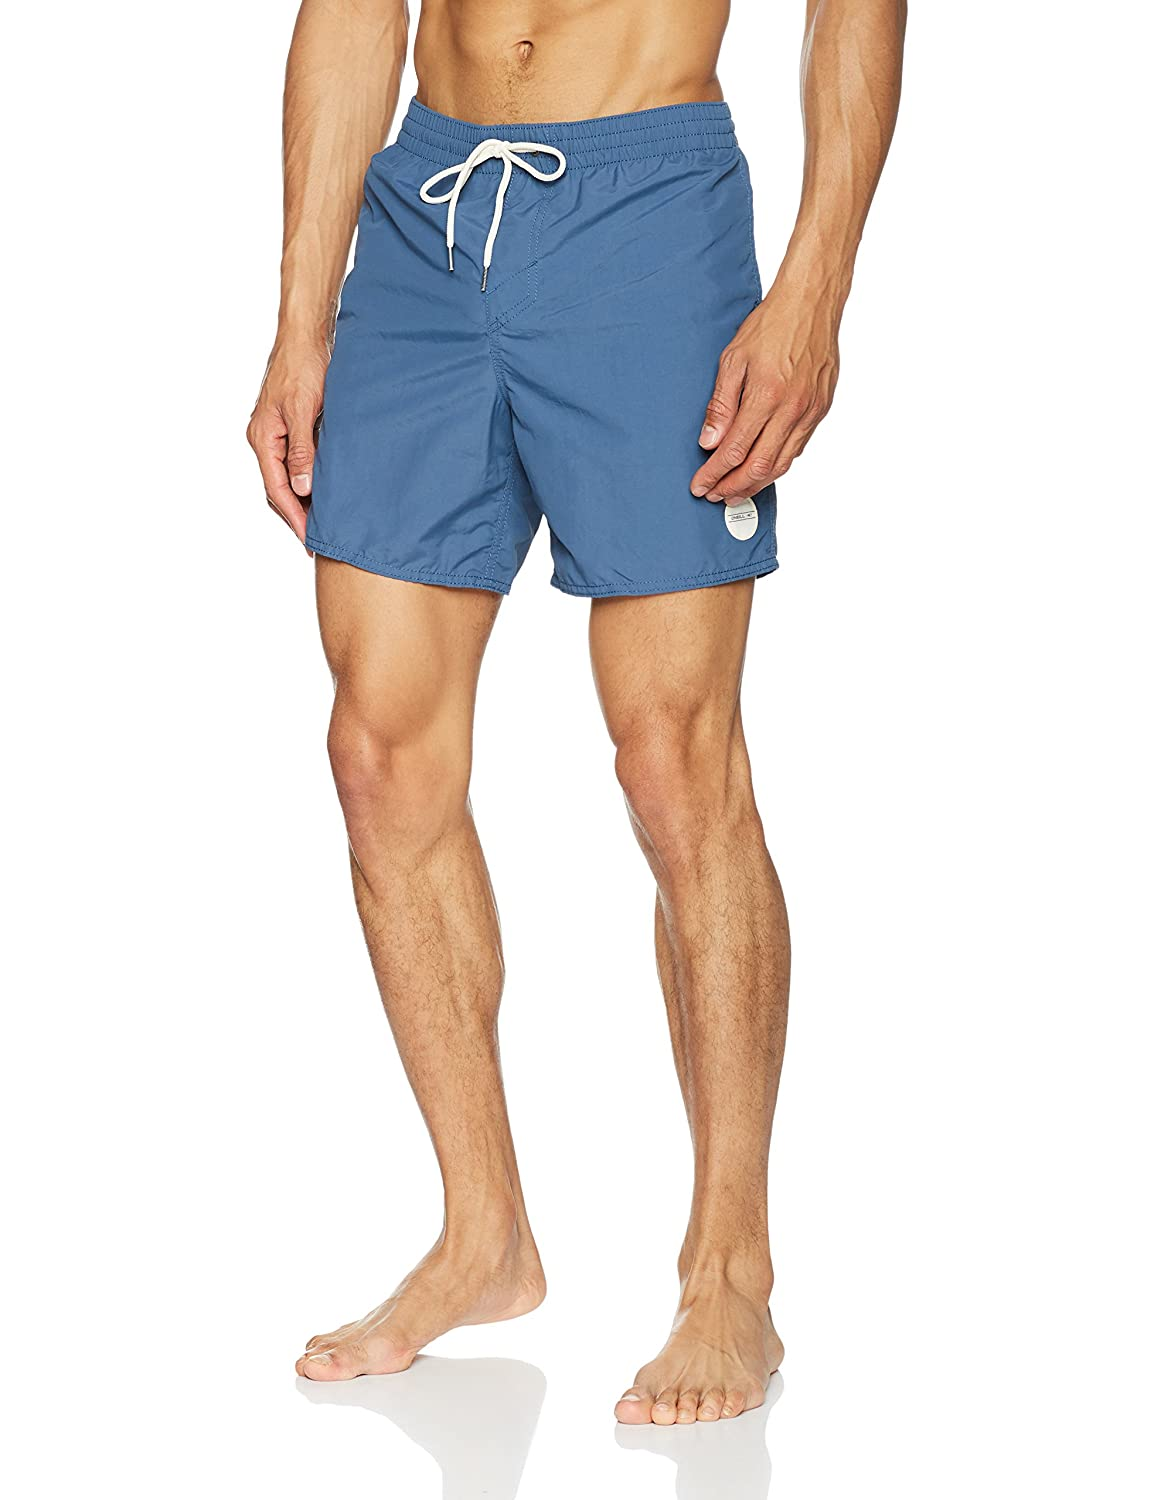 O'Neill Vert Solid Colour Men's Swim Shorts, Dusty Blue O' Neill